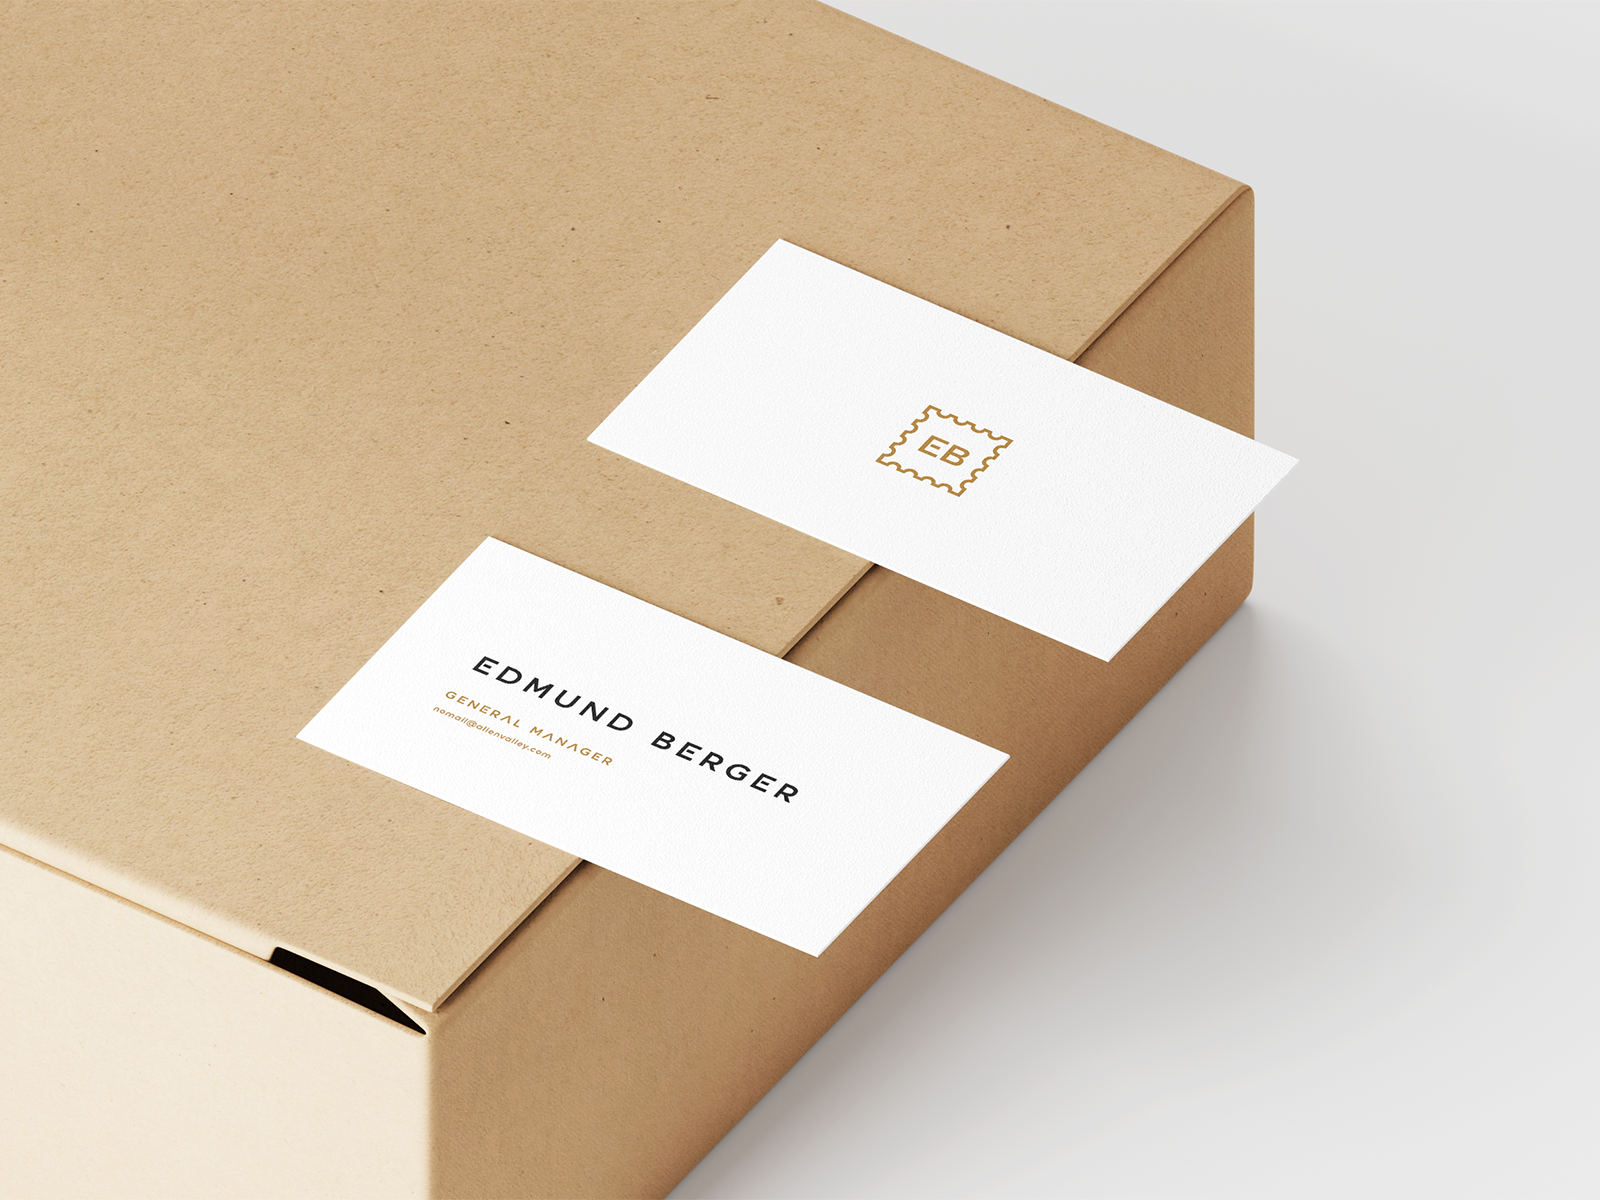 Freebie Business Cards On Box Mockup Box Mockup Download Business Card Free Business Cards